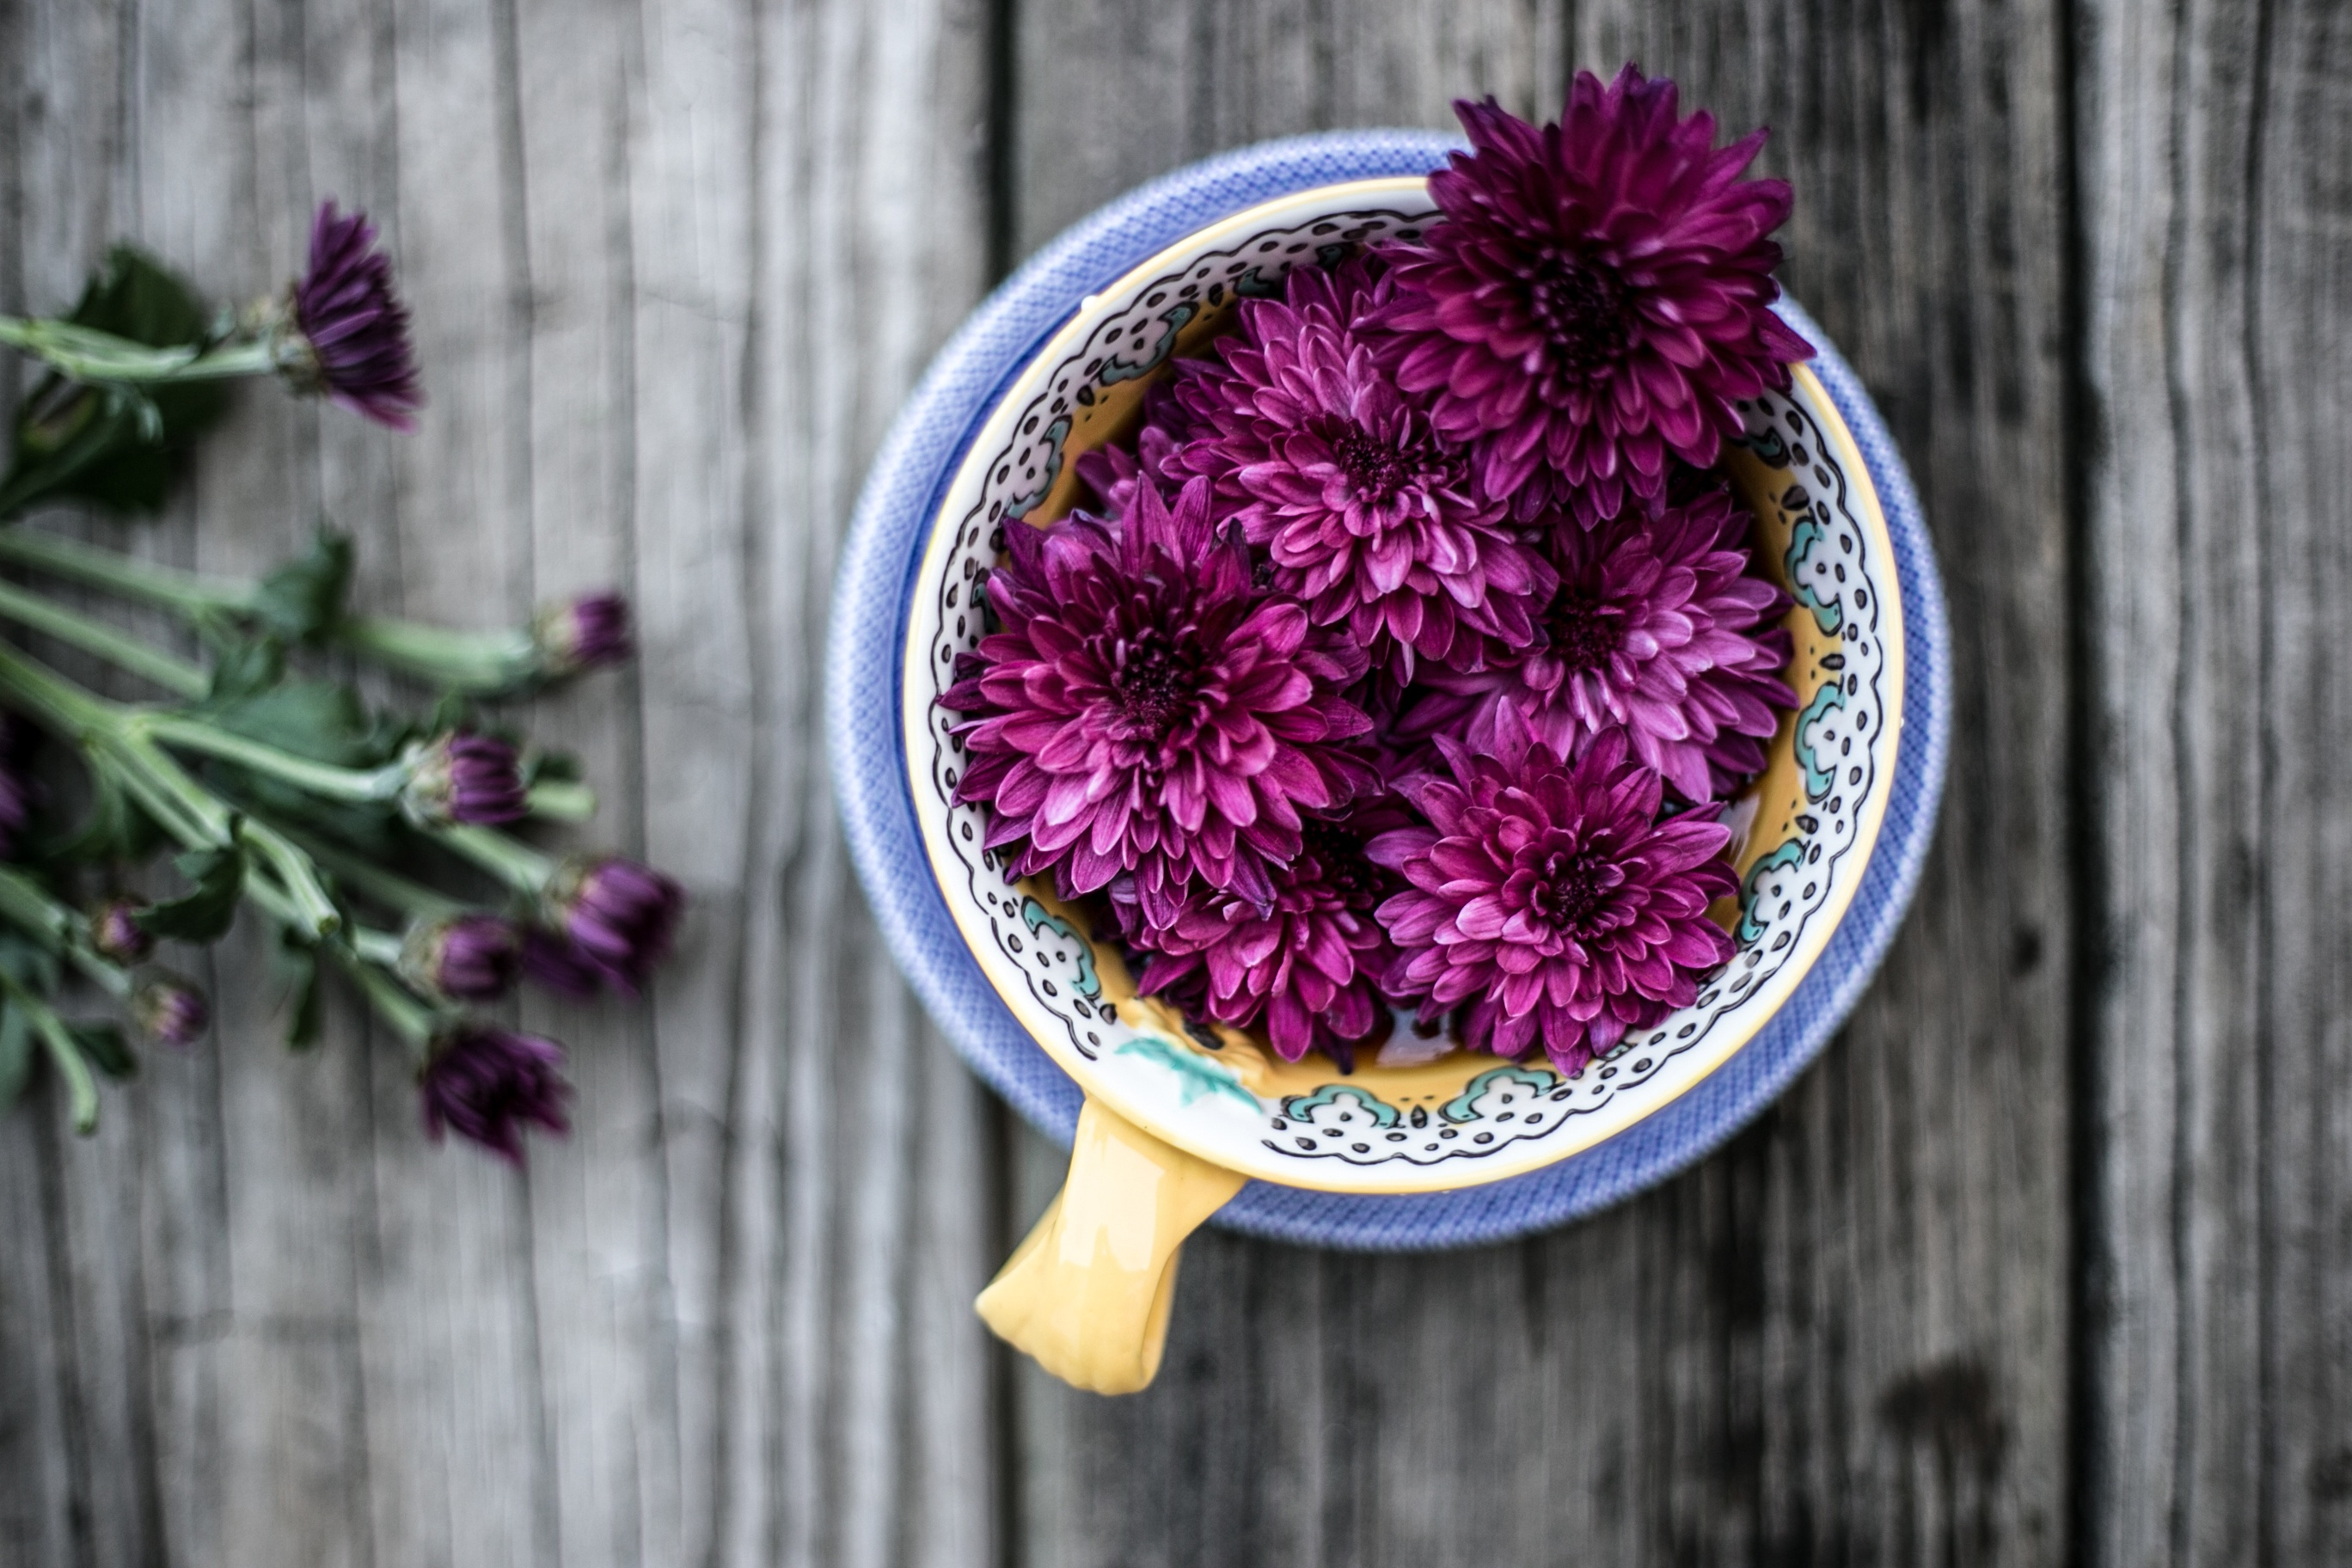 Purple dahlia flowers heads in a bowl on a rustic wooden table.